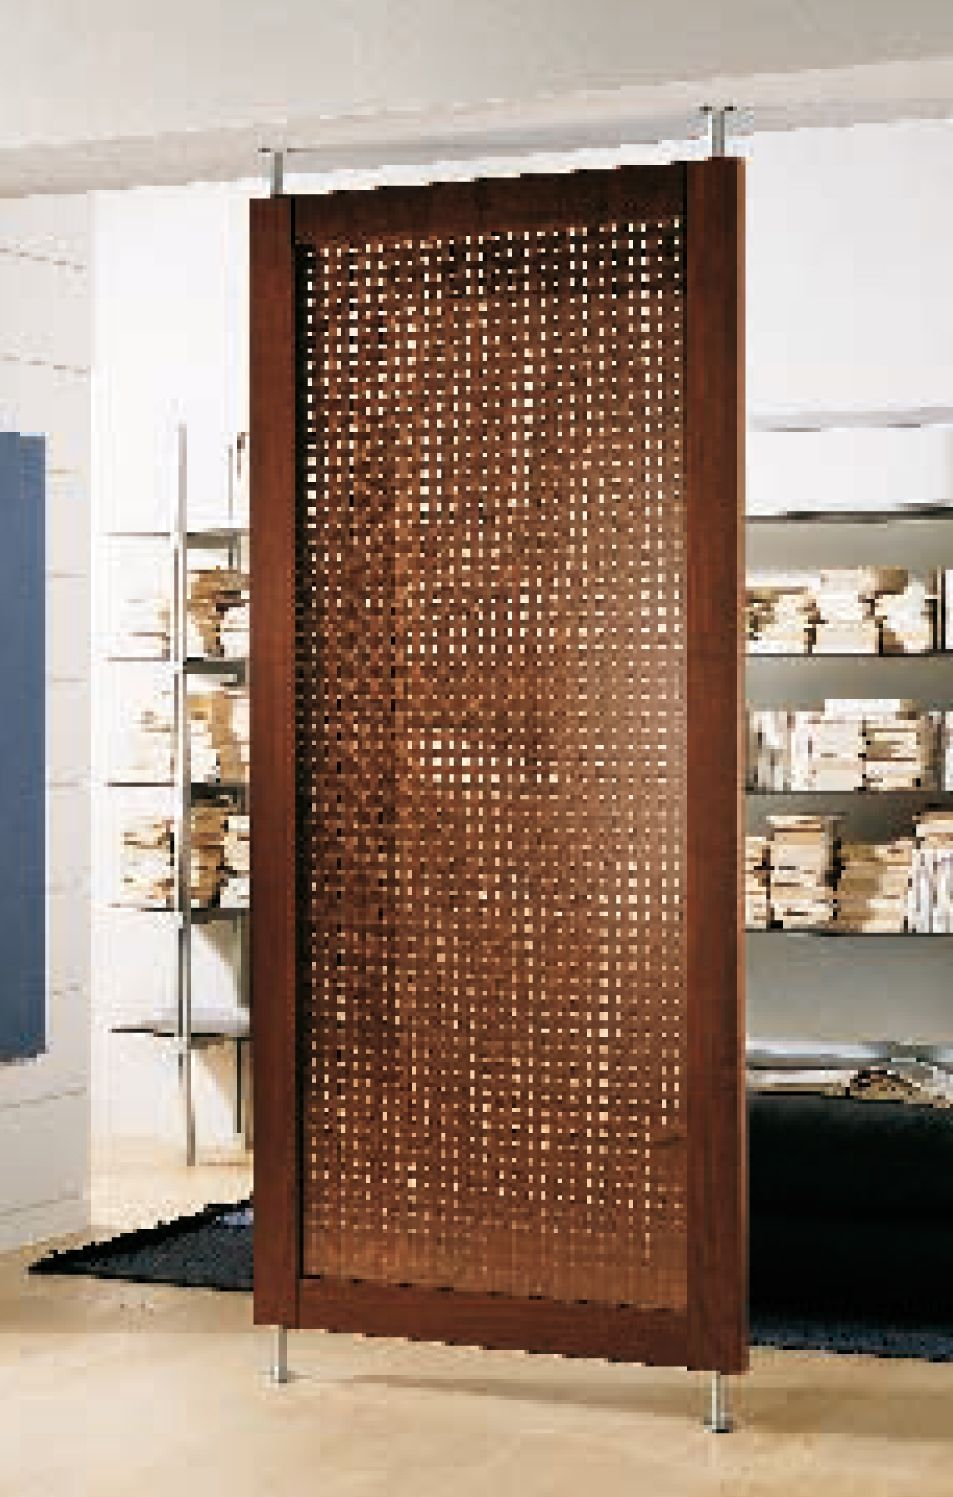 Inexpensive room separators exit coper home inspiration cool home decor ideas pinterest - Decorative partitions room divider ...